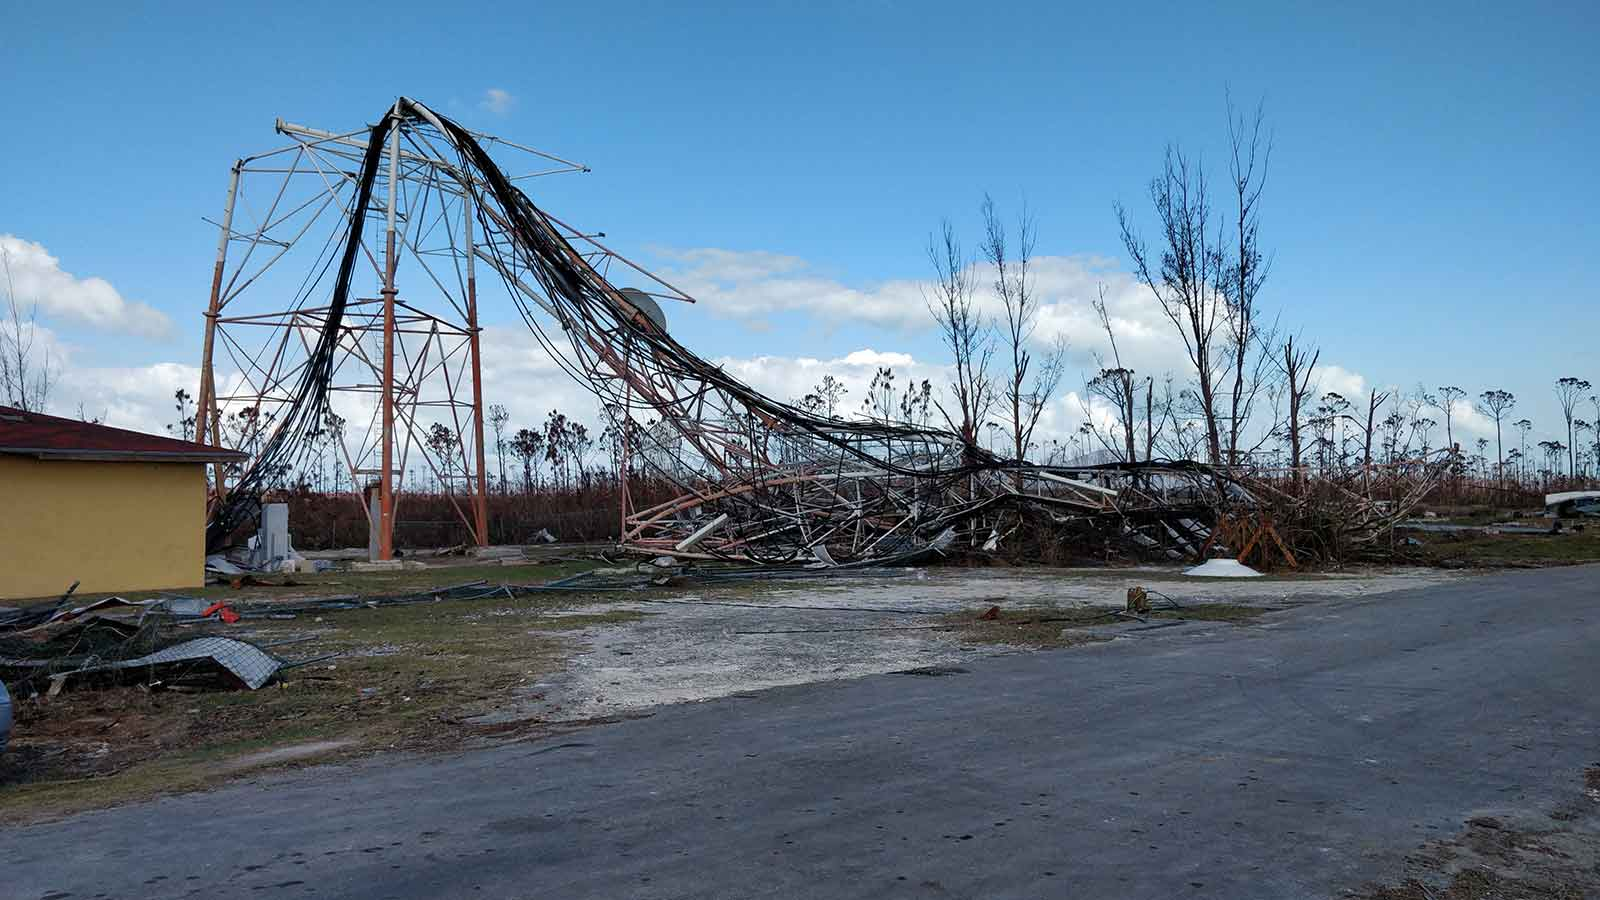 Damage-to-infrastructure-after-a-hurricane